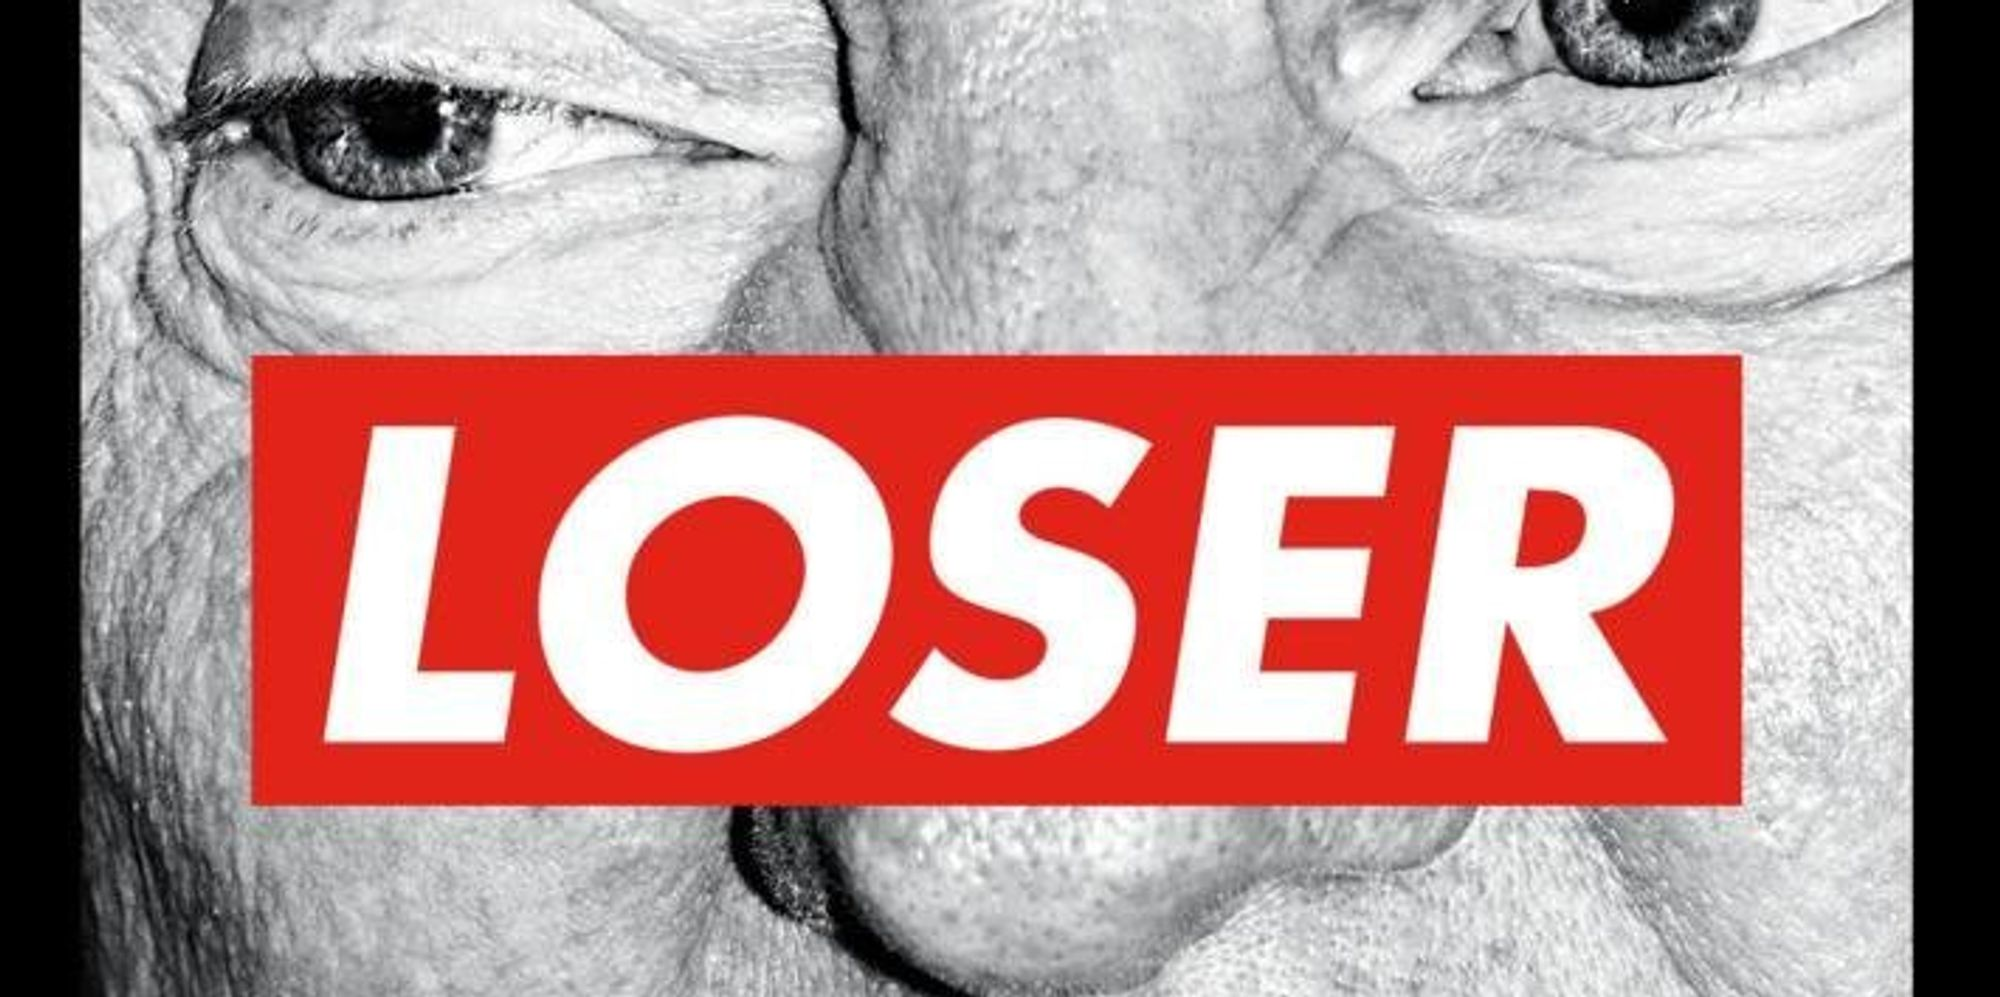 Artist Barbara Kruger Calls Trump A Loser On The Cover Of New York Magazine